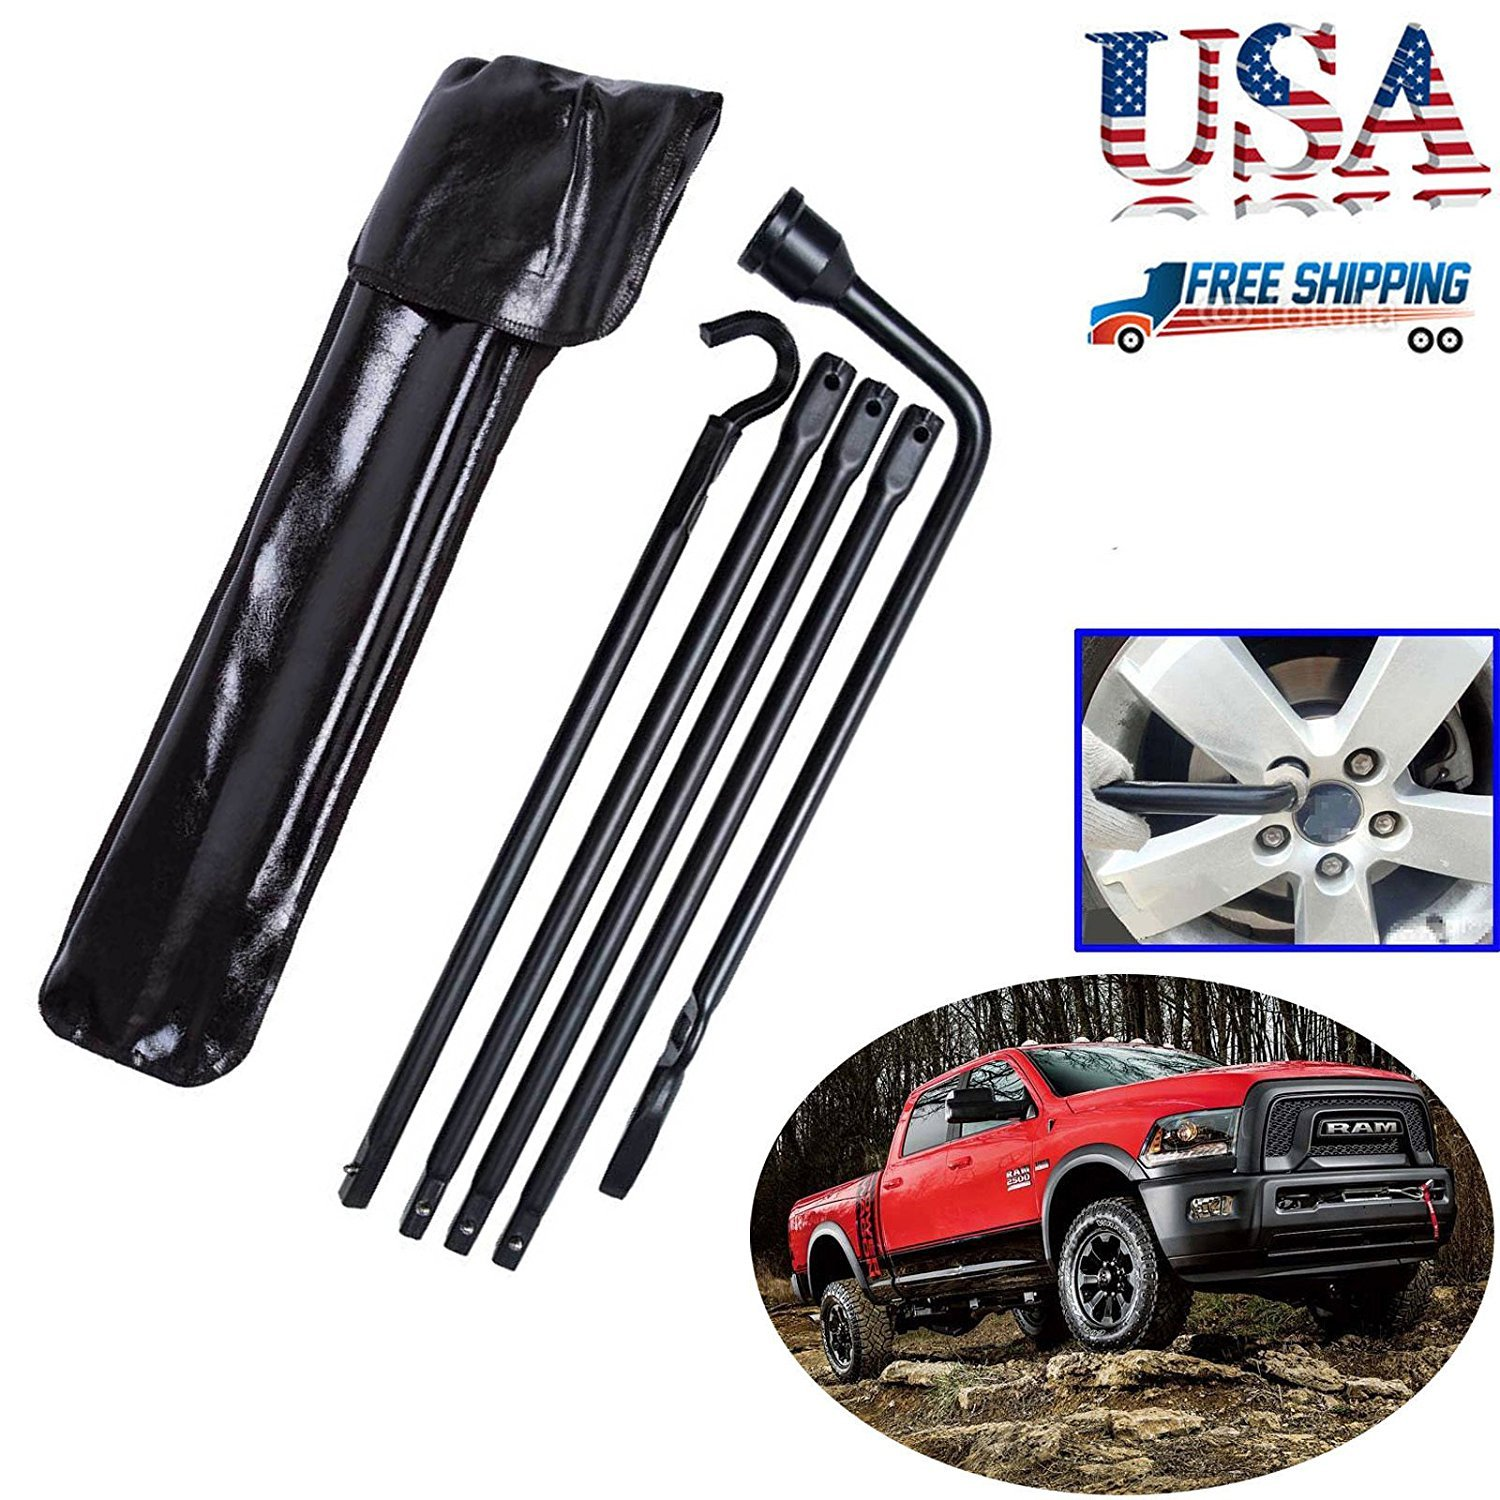 Spare Tire Tool Kit with Carry Bag Replacement for Spare Jack Fits Dodge Ram 1500 2002-2015 by DICN (Image #1)